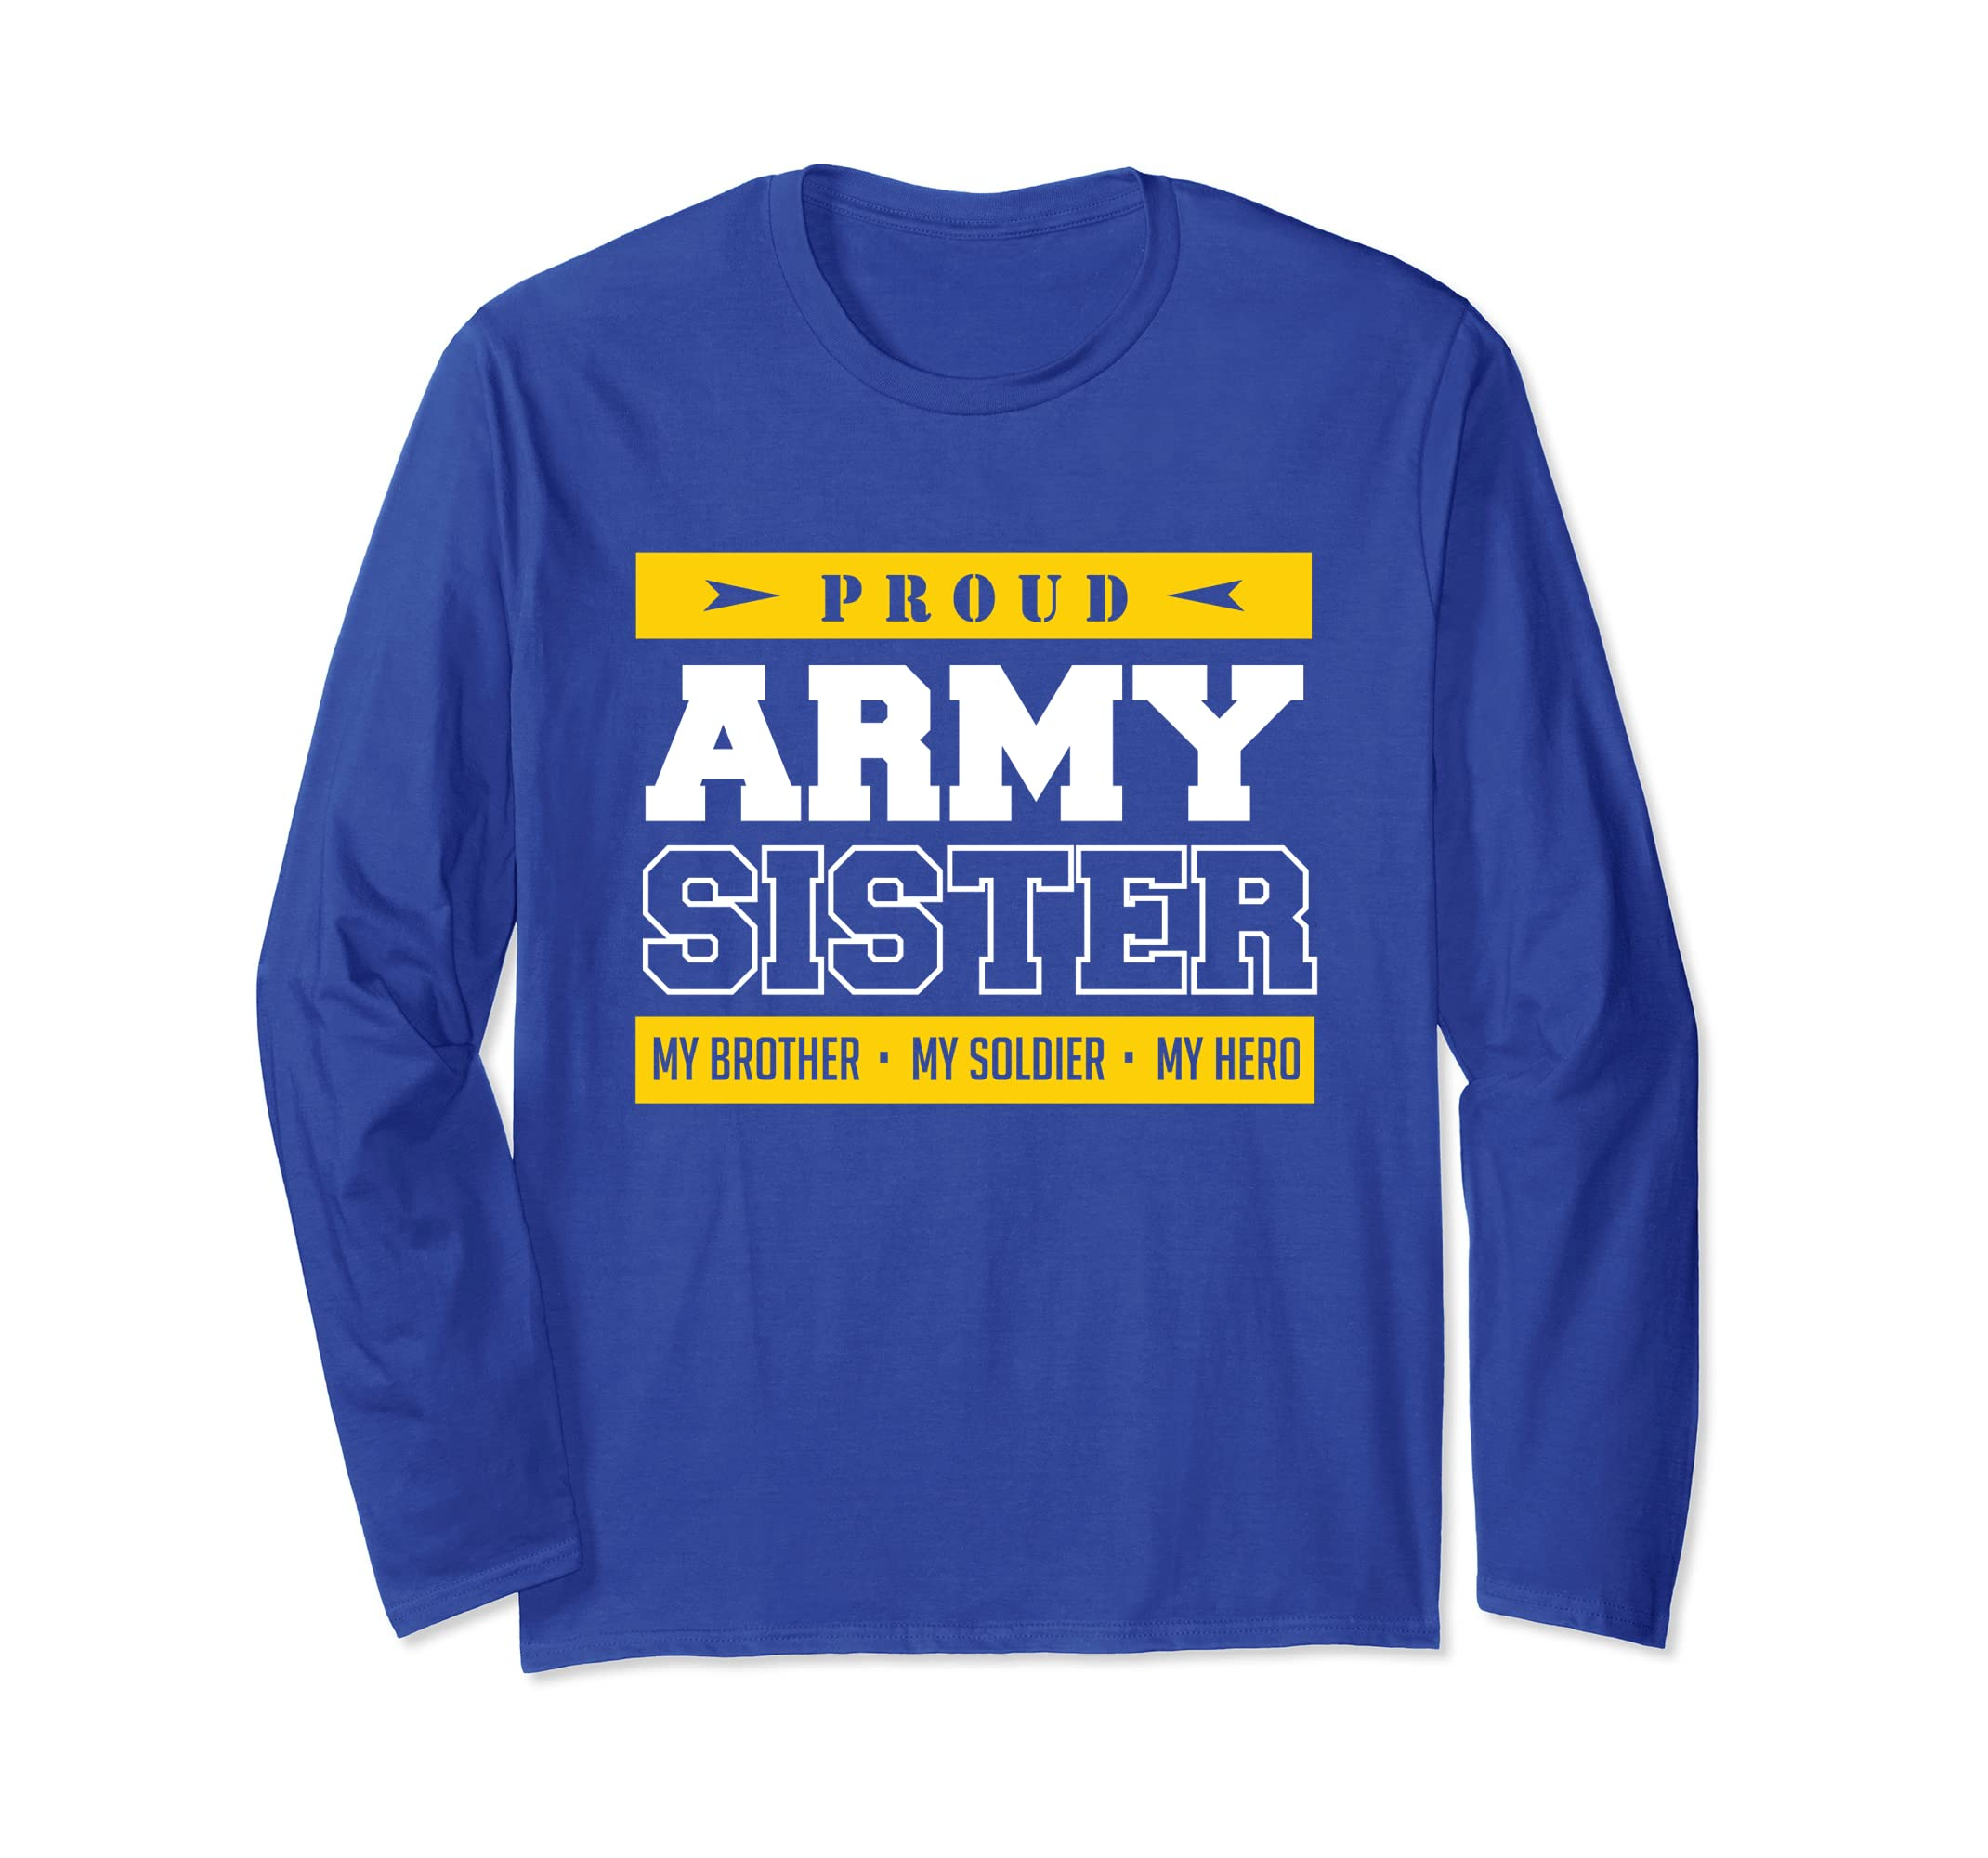 27ee0a1b88c Amazon.com  Proud Army Sister Long T Shirt Proud To Be An Army Sister   Clothing